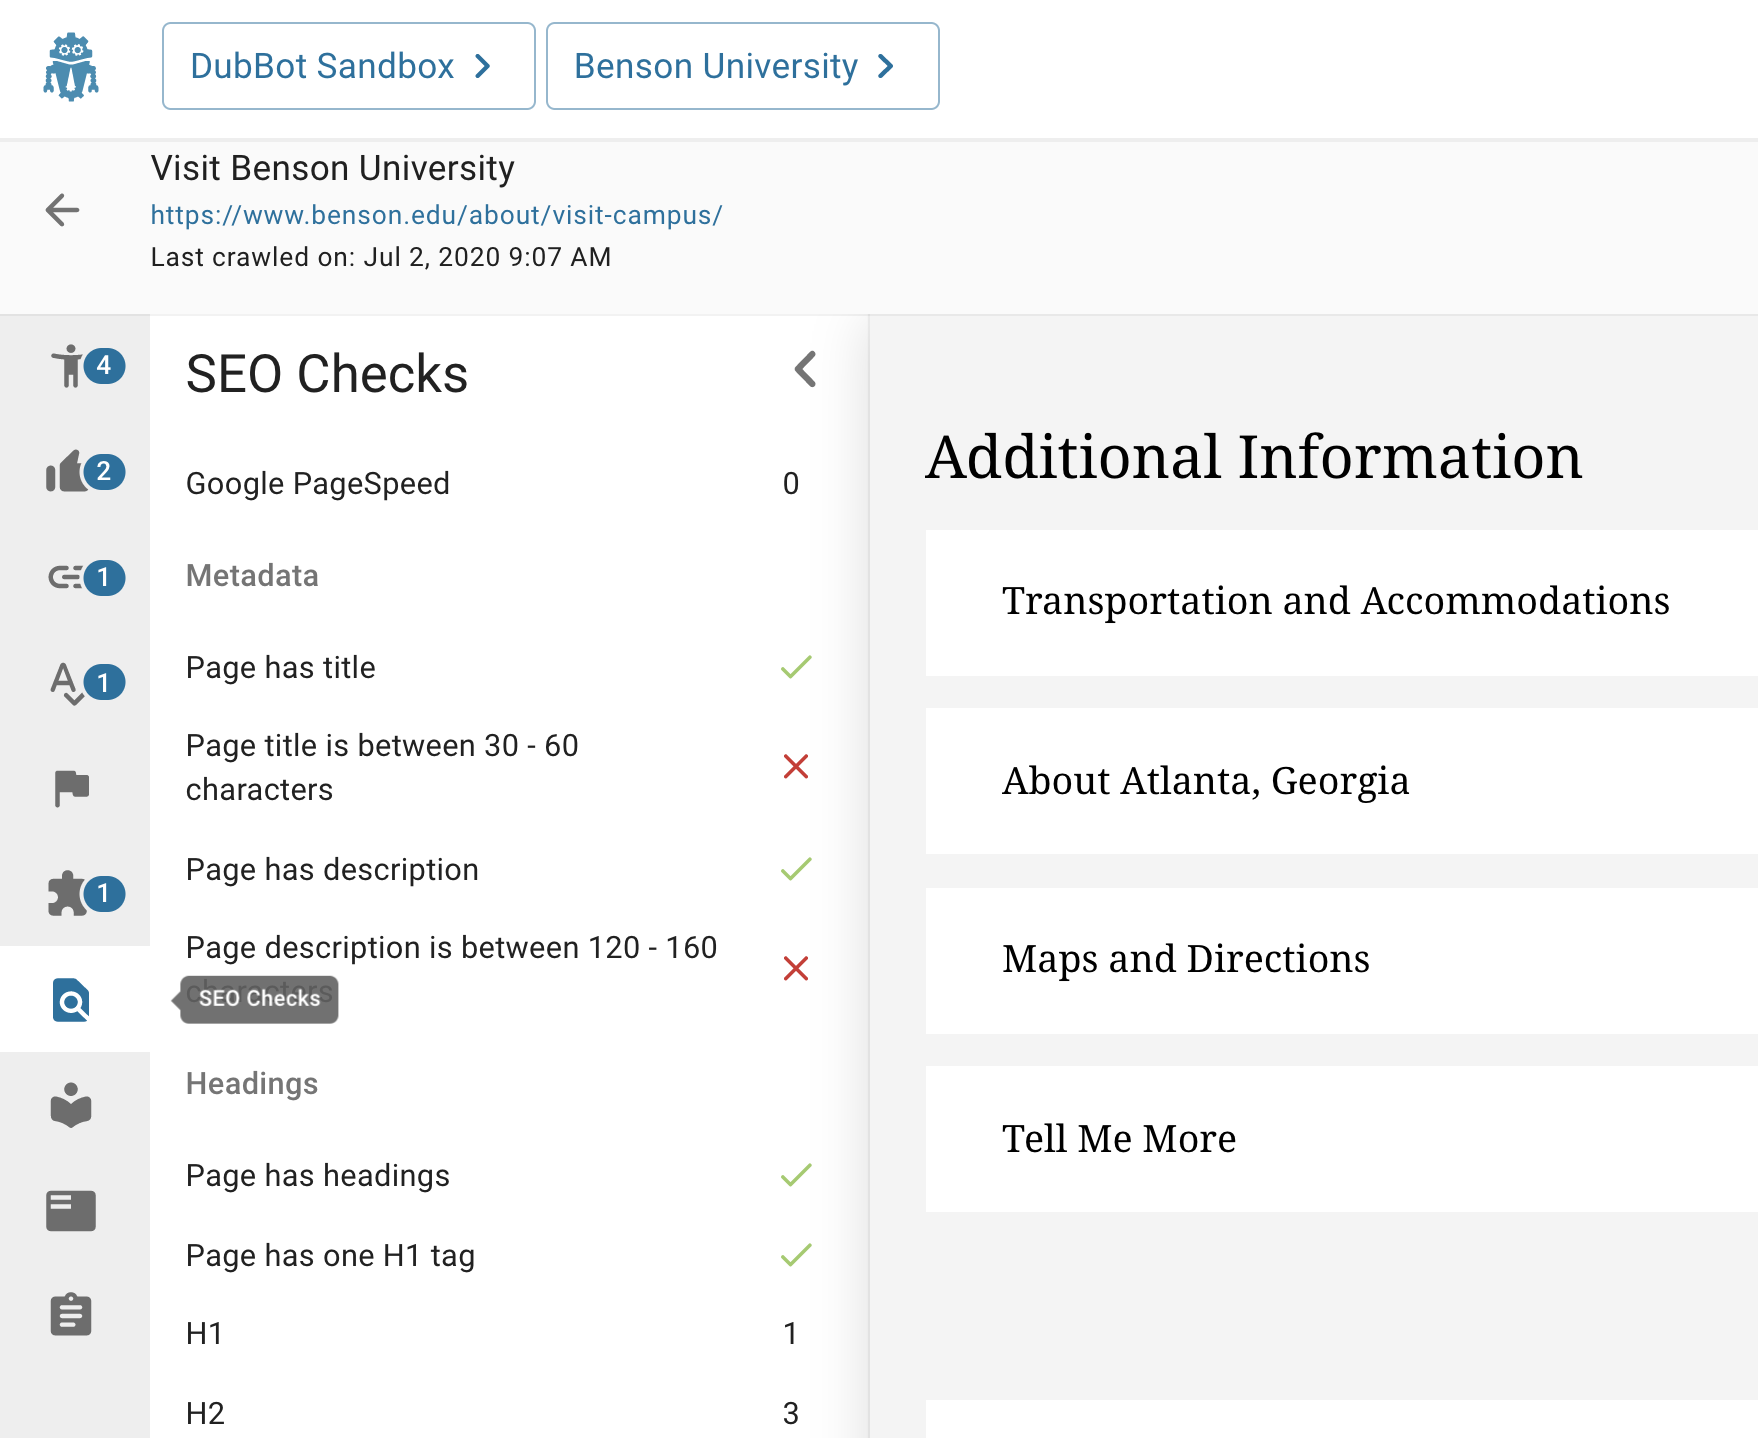 Page is in preview mode with the SEO icon highlighted and the list of SEO metrics failures (indicated by an X) and successes (indicated by a checkmark) listed vertically parallel to the list of icons.